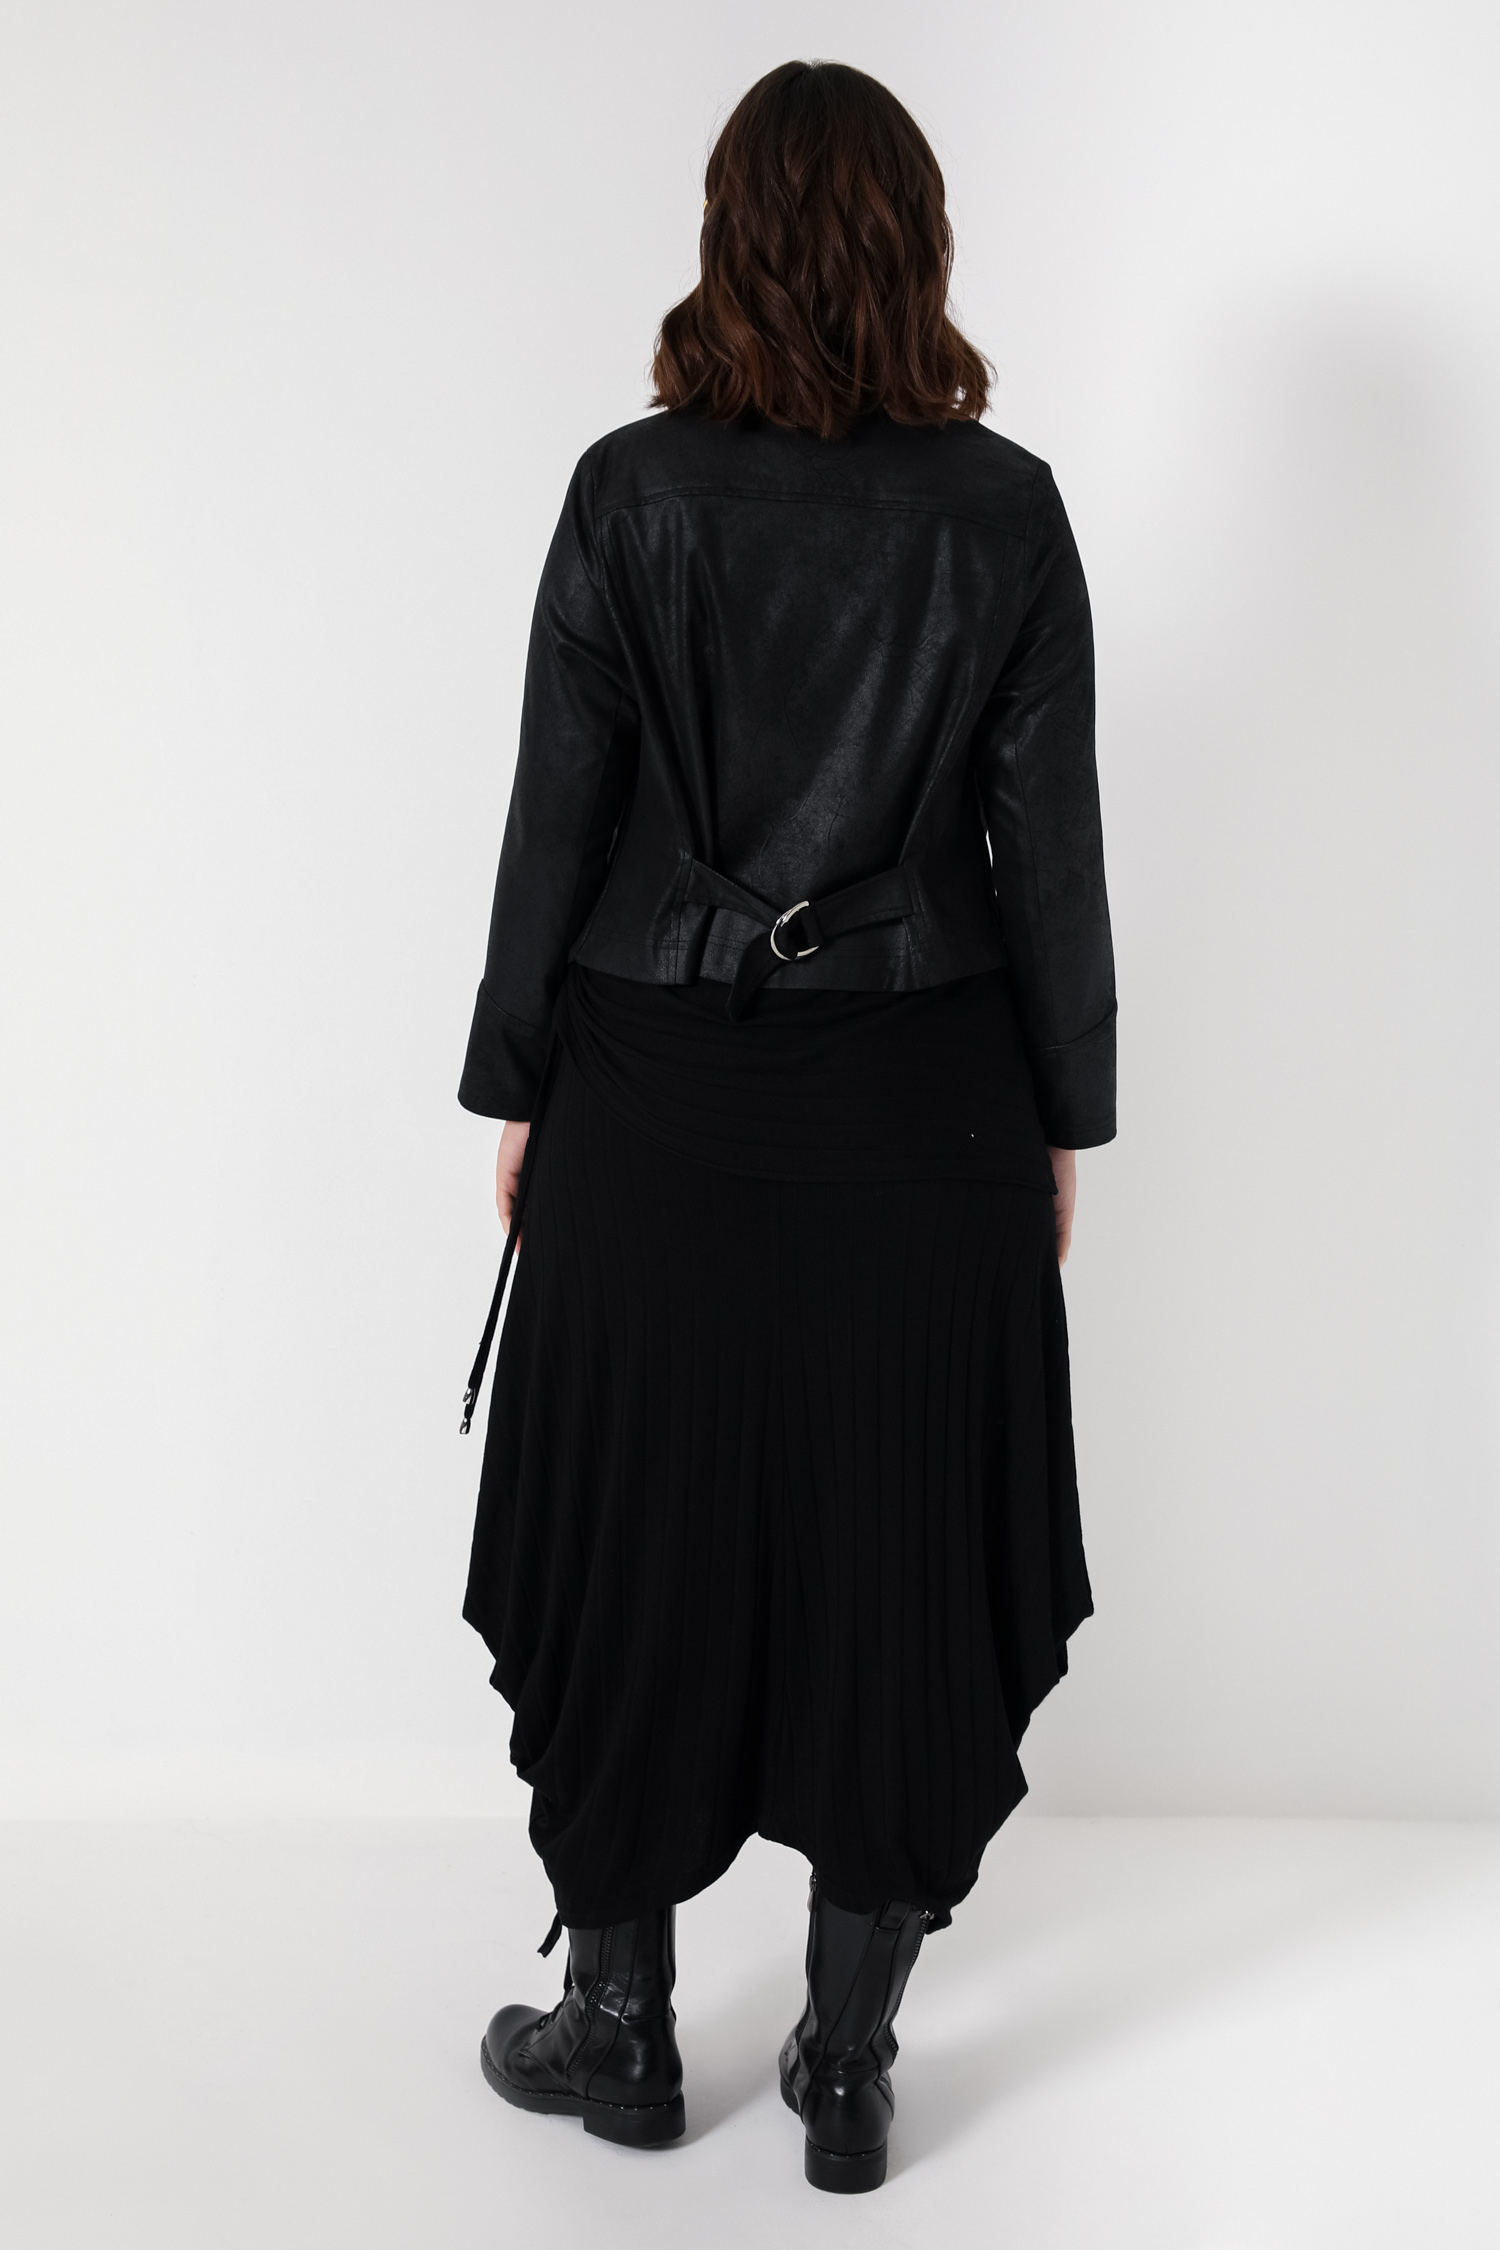 Ribbed knit skirt with basque (shipping 15/20 February)